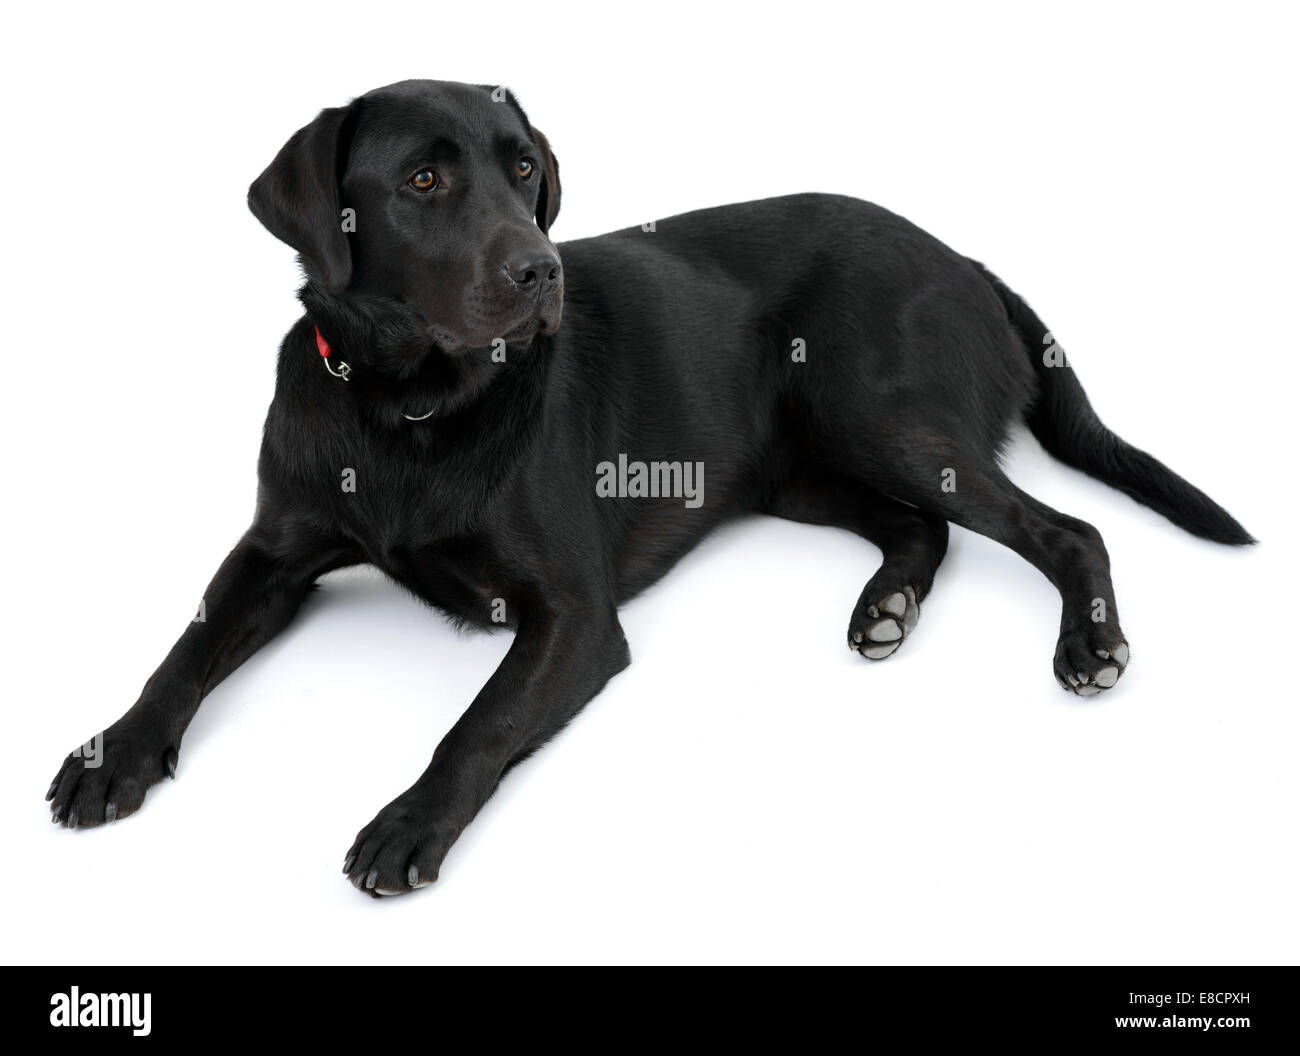 Black labrador retriever dog lying down cut out isolated on white background - Stock Image